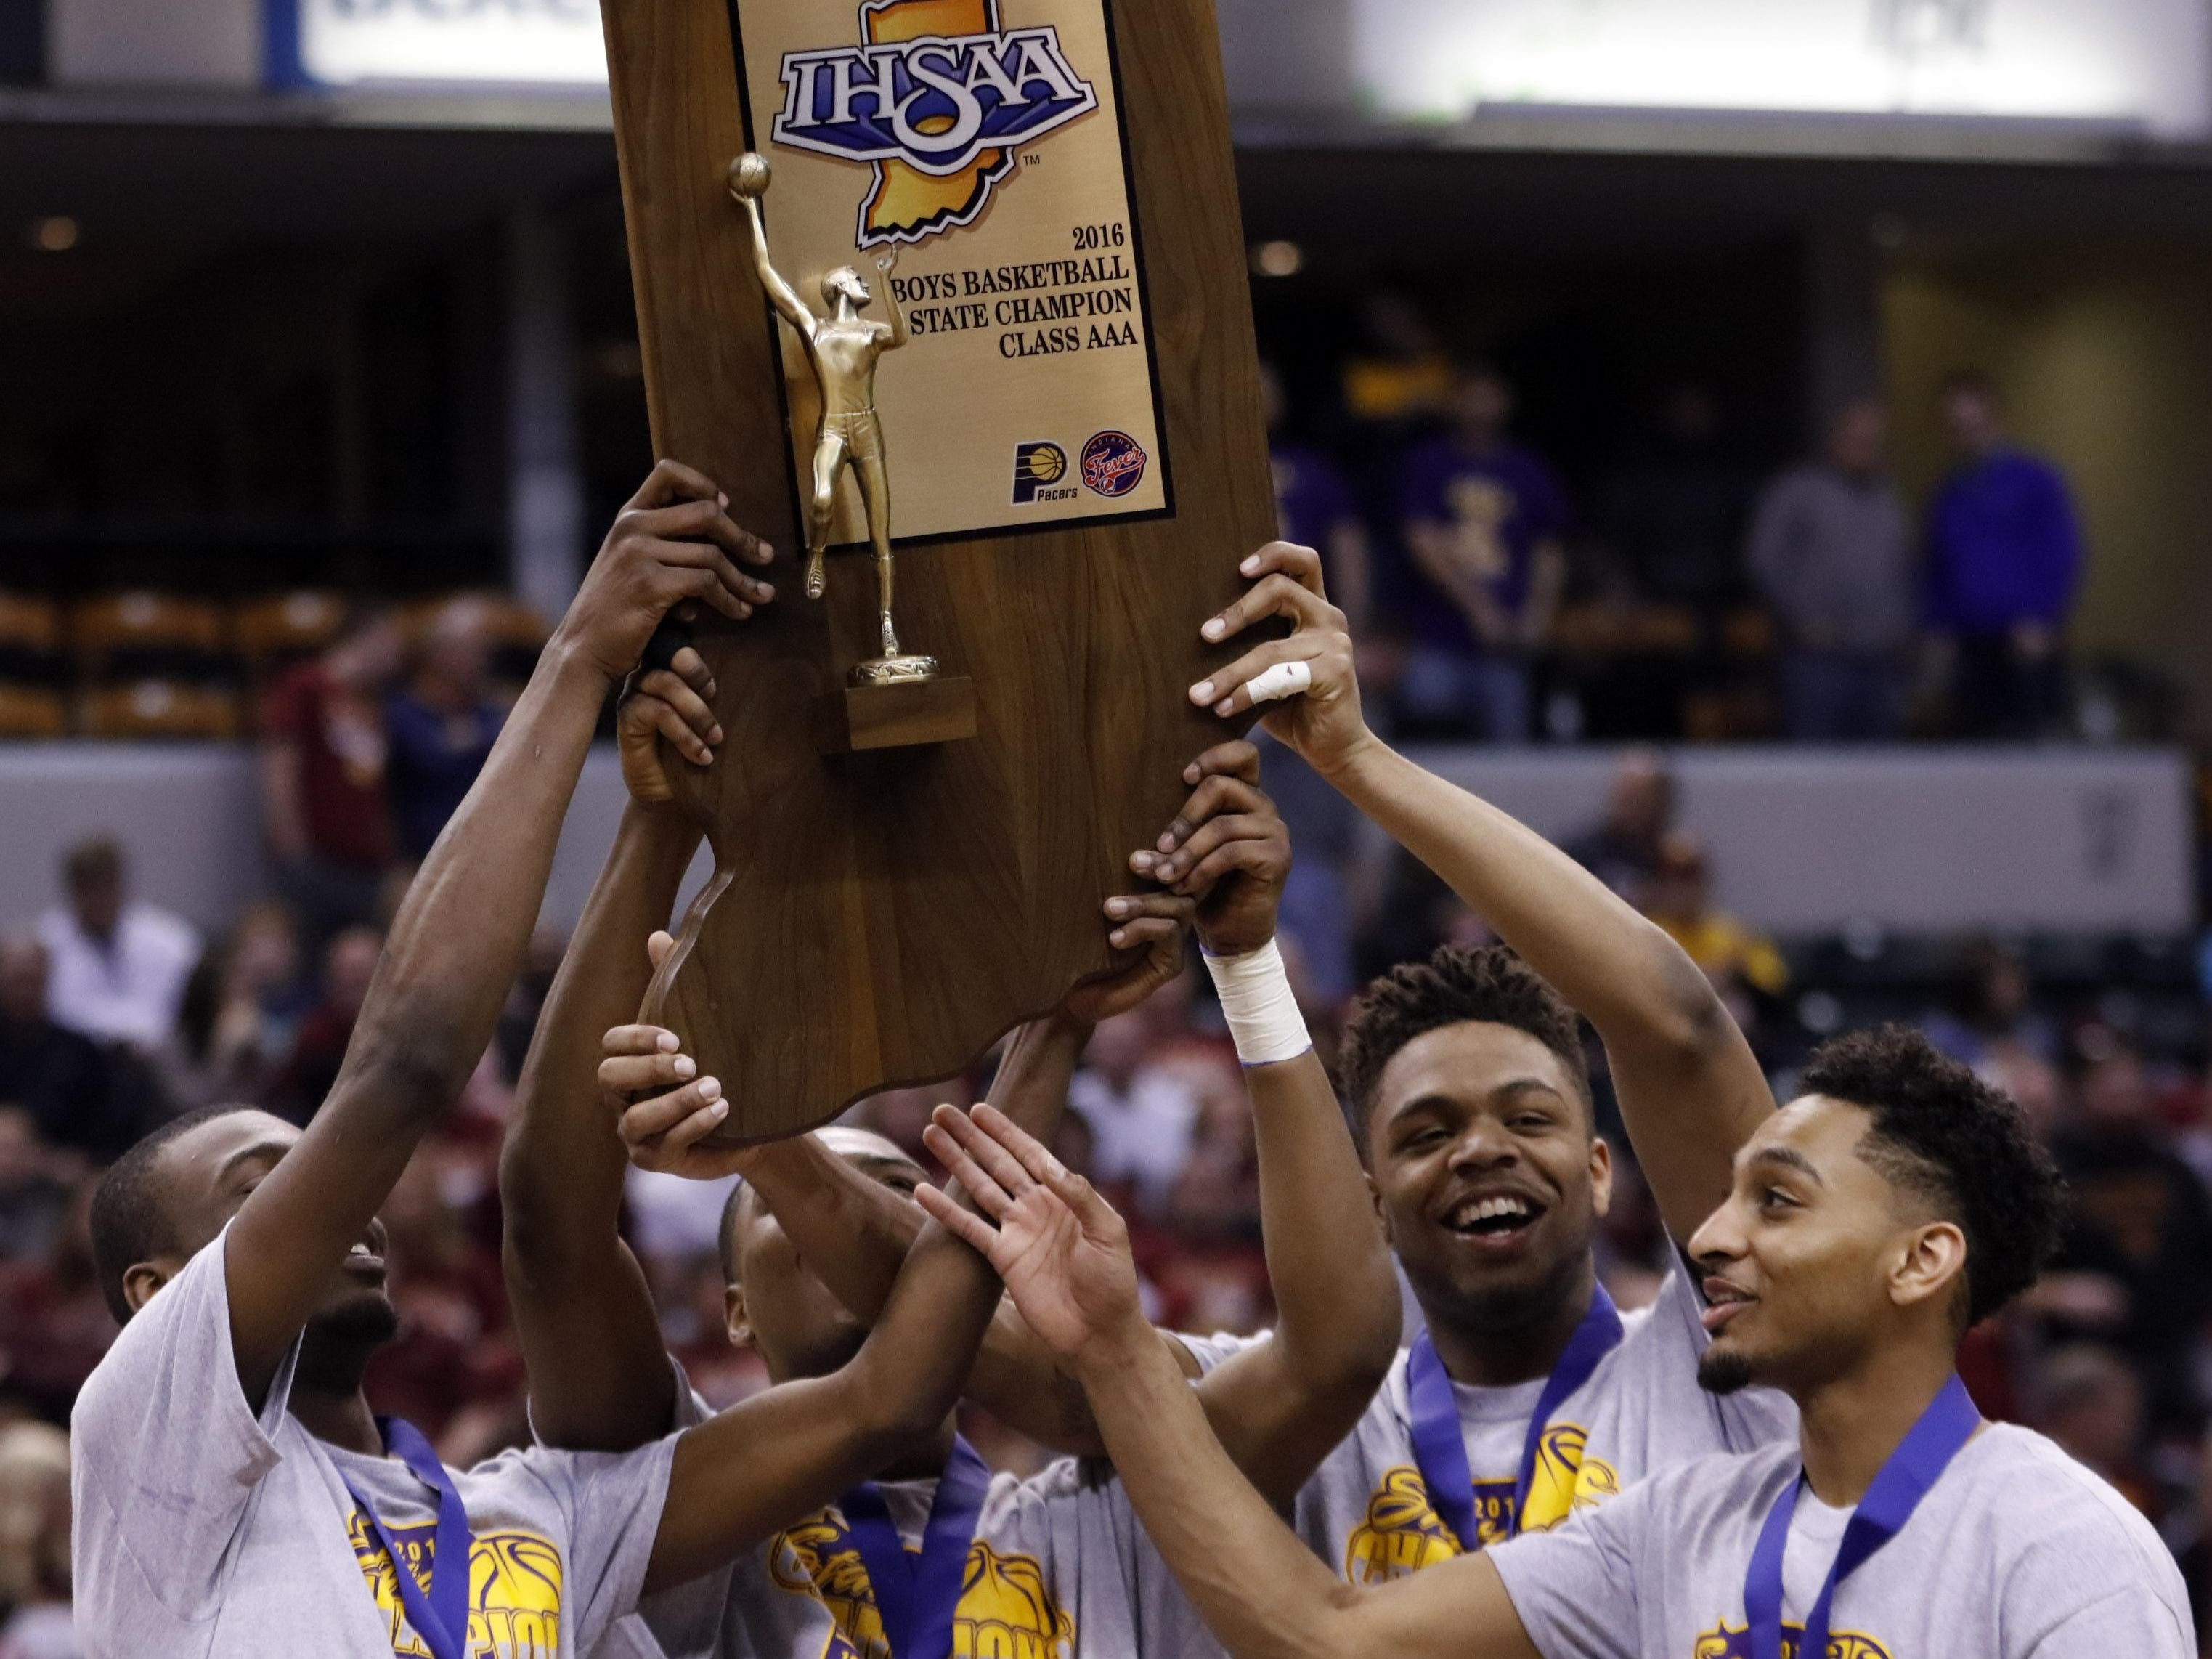 Marion guard Vijay Blackmon, right, and Marion forward Reggie Jones, second from right, hoist the trophy with teammates after defeating Evansville Bosse in the Indiana Class 3A IHSAA state championship basketball game in Indianapolis, Saturday, March 26, 2016. Marion won 73-68. (AP Photo/AJ Mast)